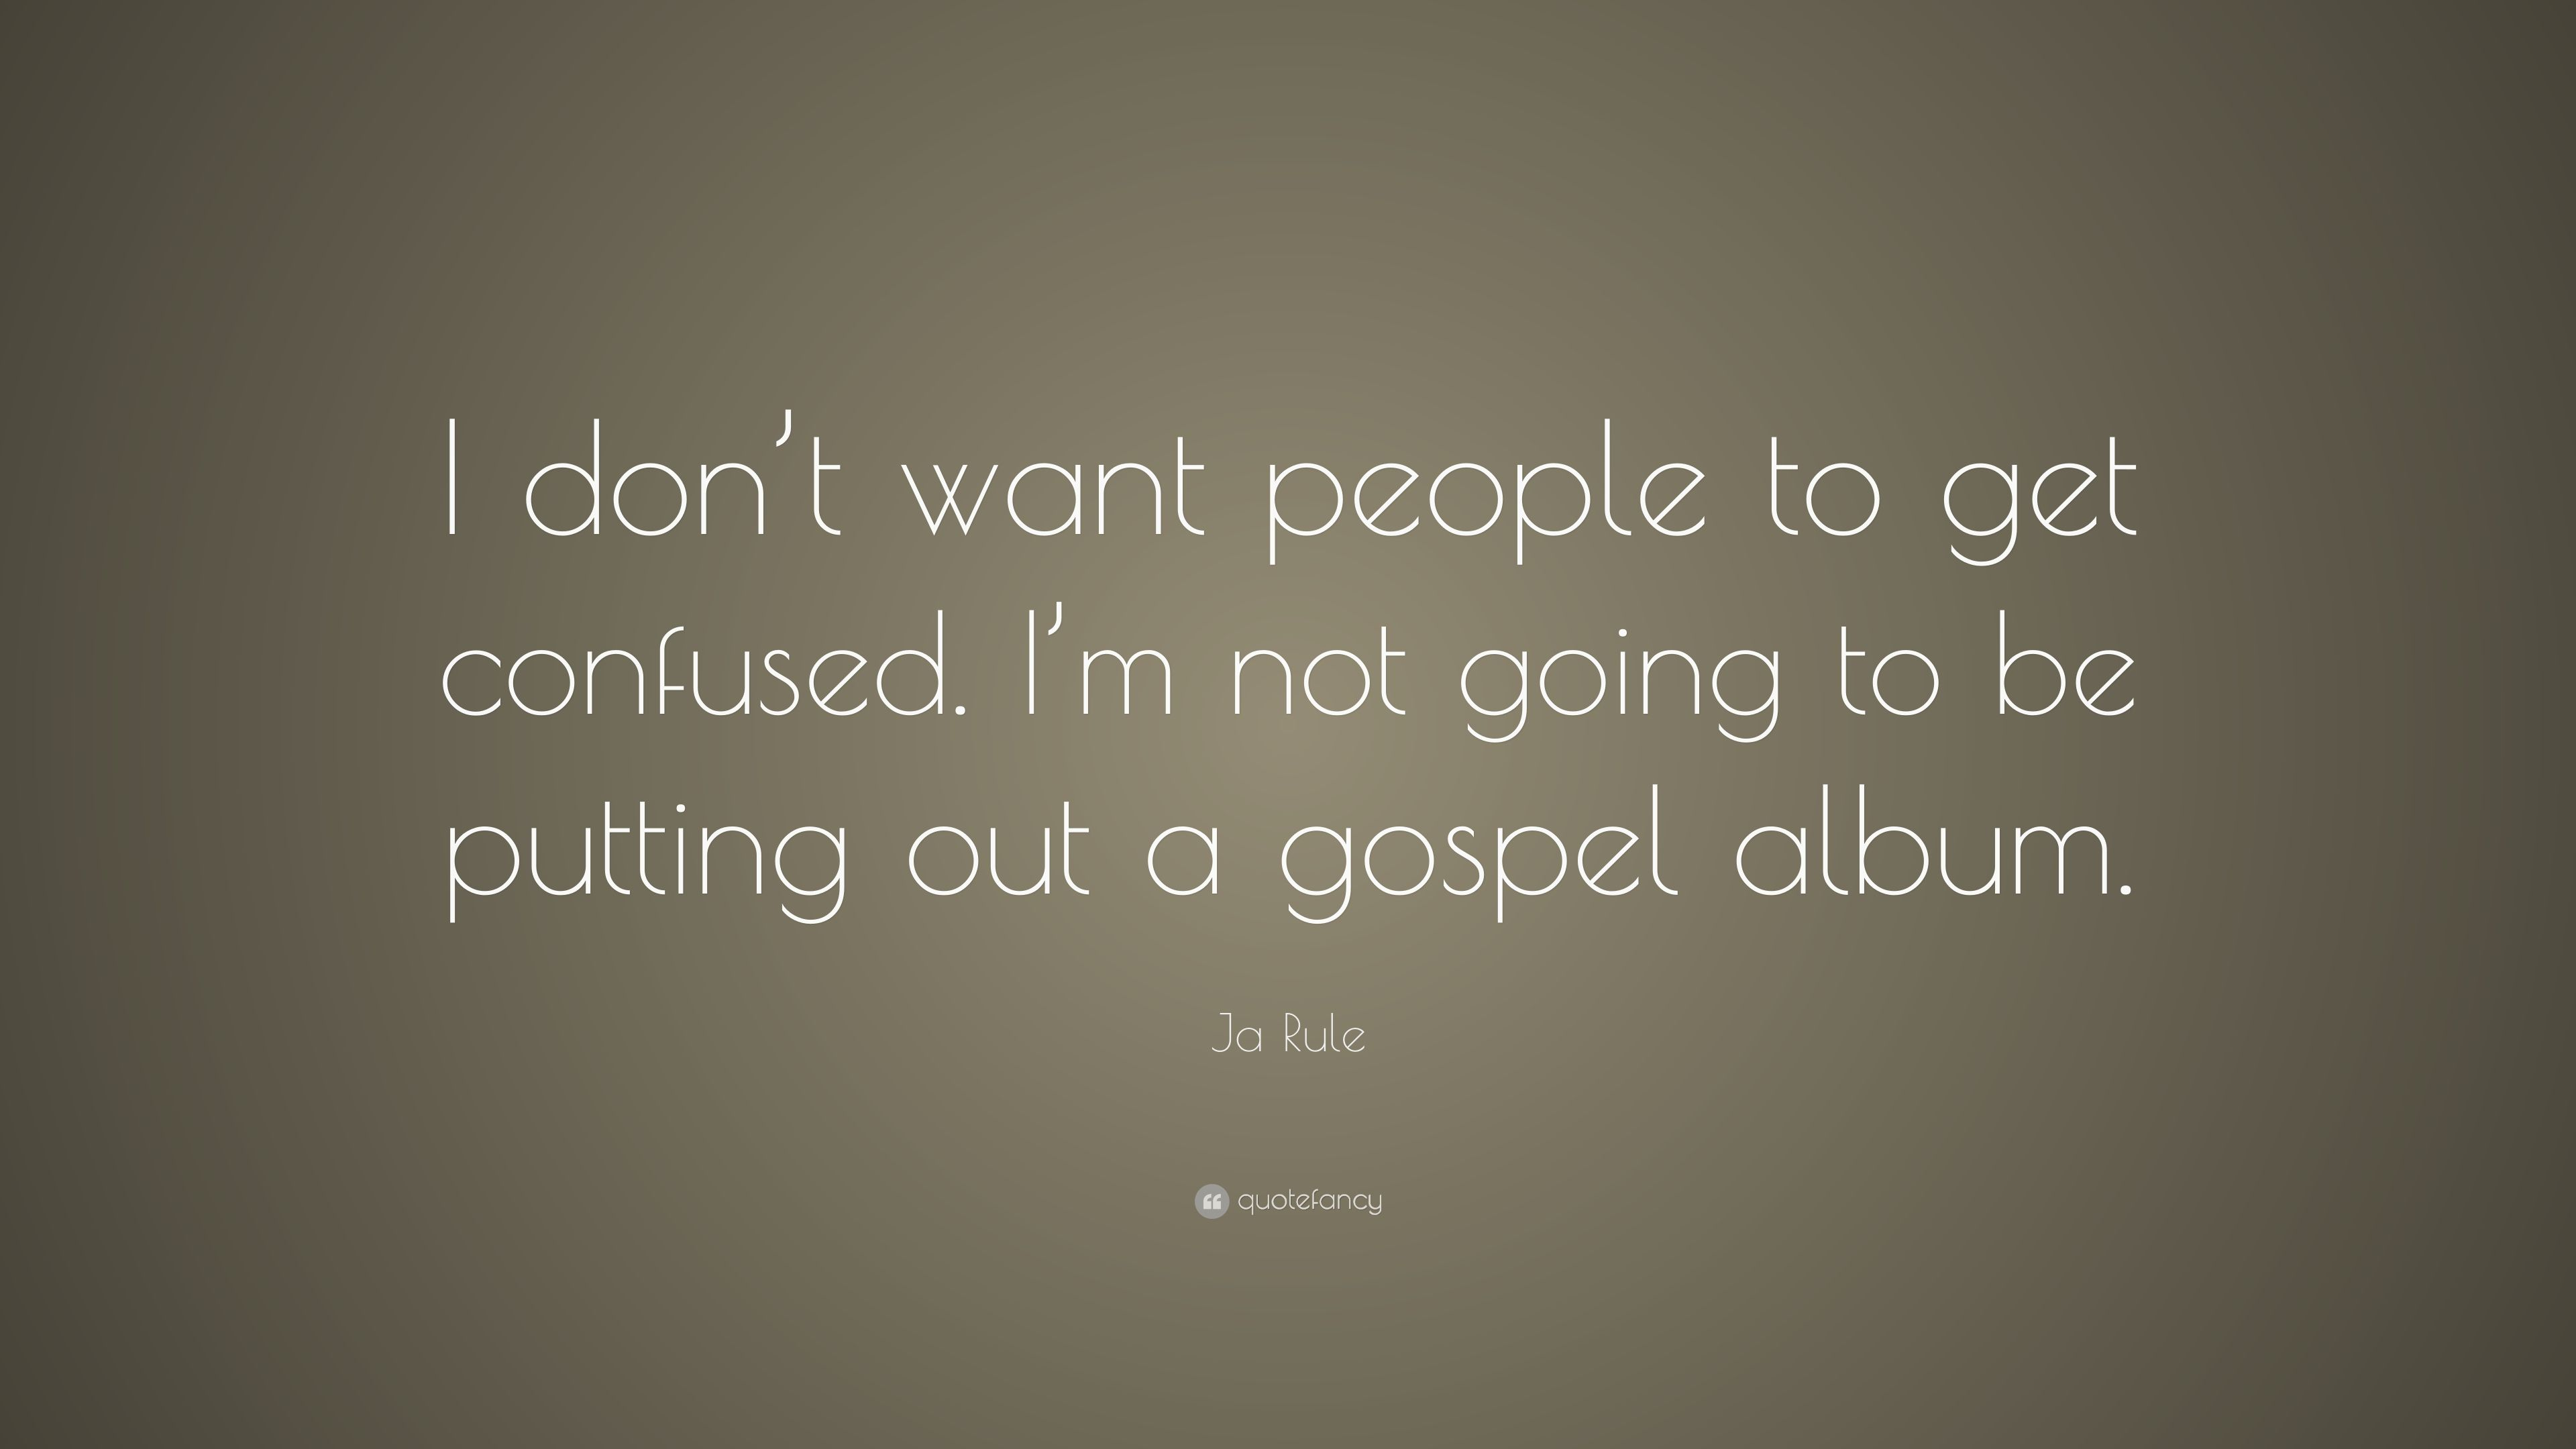 """Ja Rule Love Quotes Delightful ja rule quote: """"i don't want people to get confused. i'm not going"""